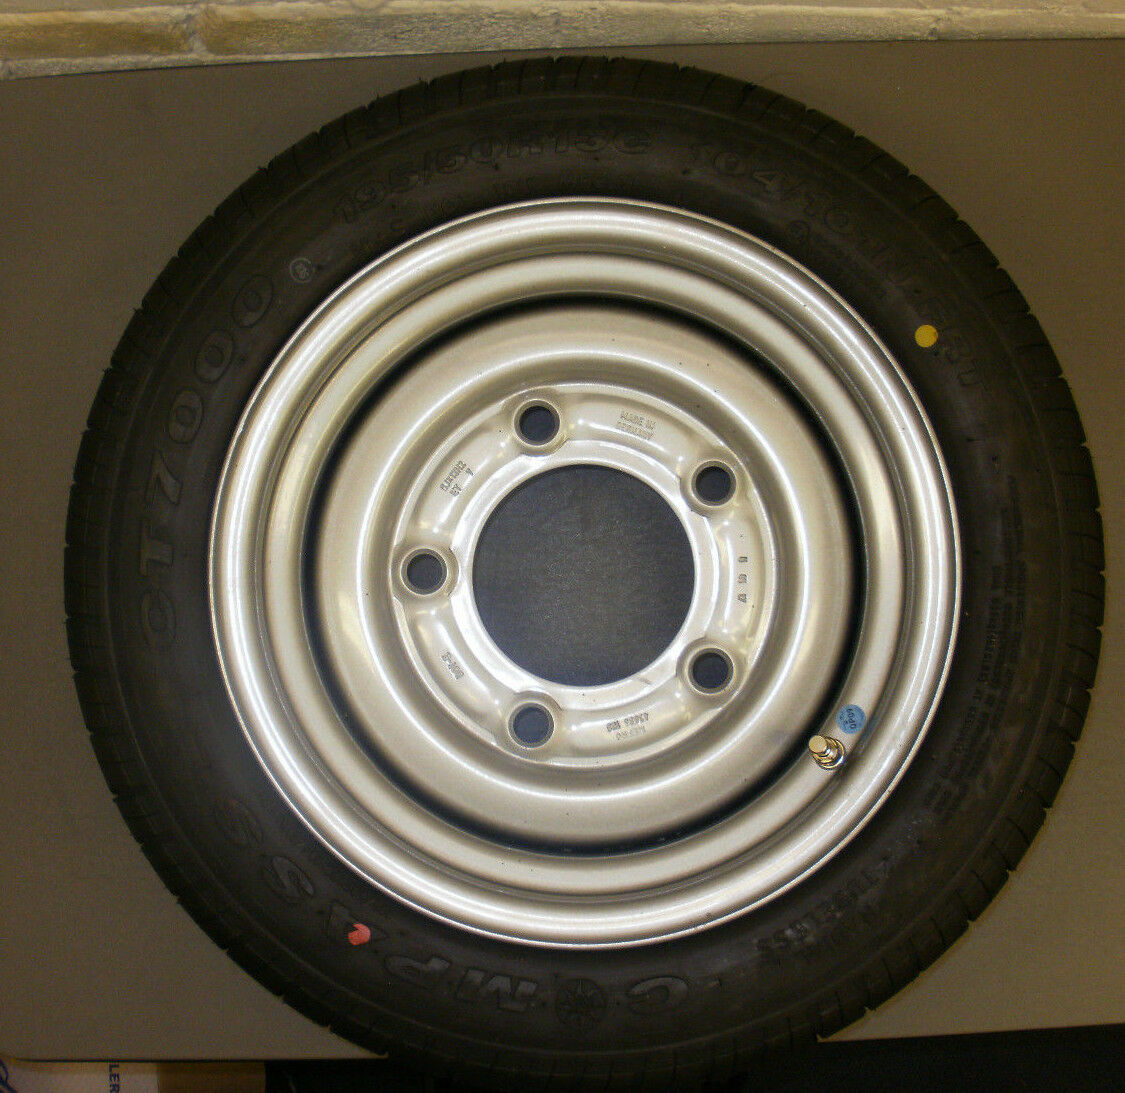 195/50/13 wheel and tyre assembly to fit Ifor Williams plant/livestock trailers.